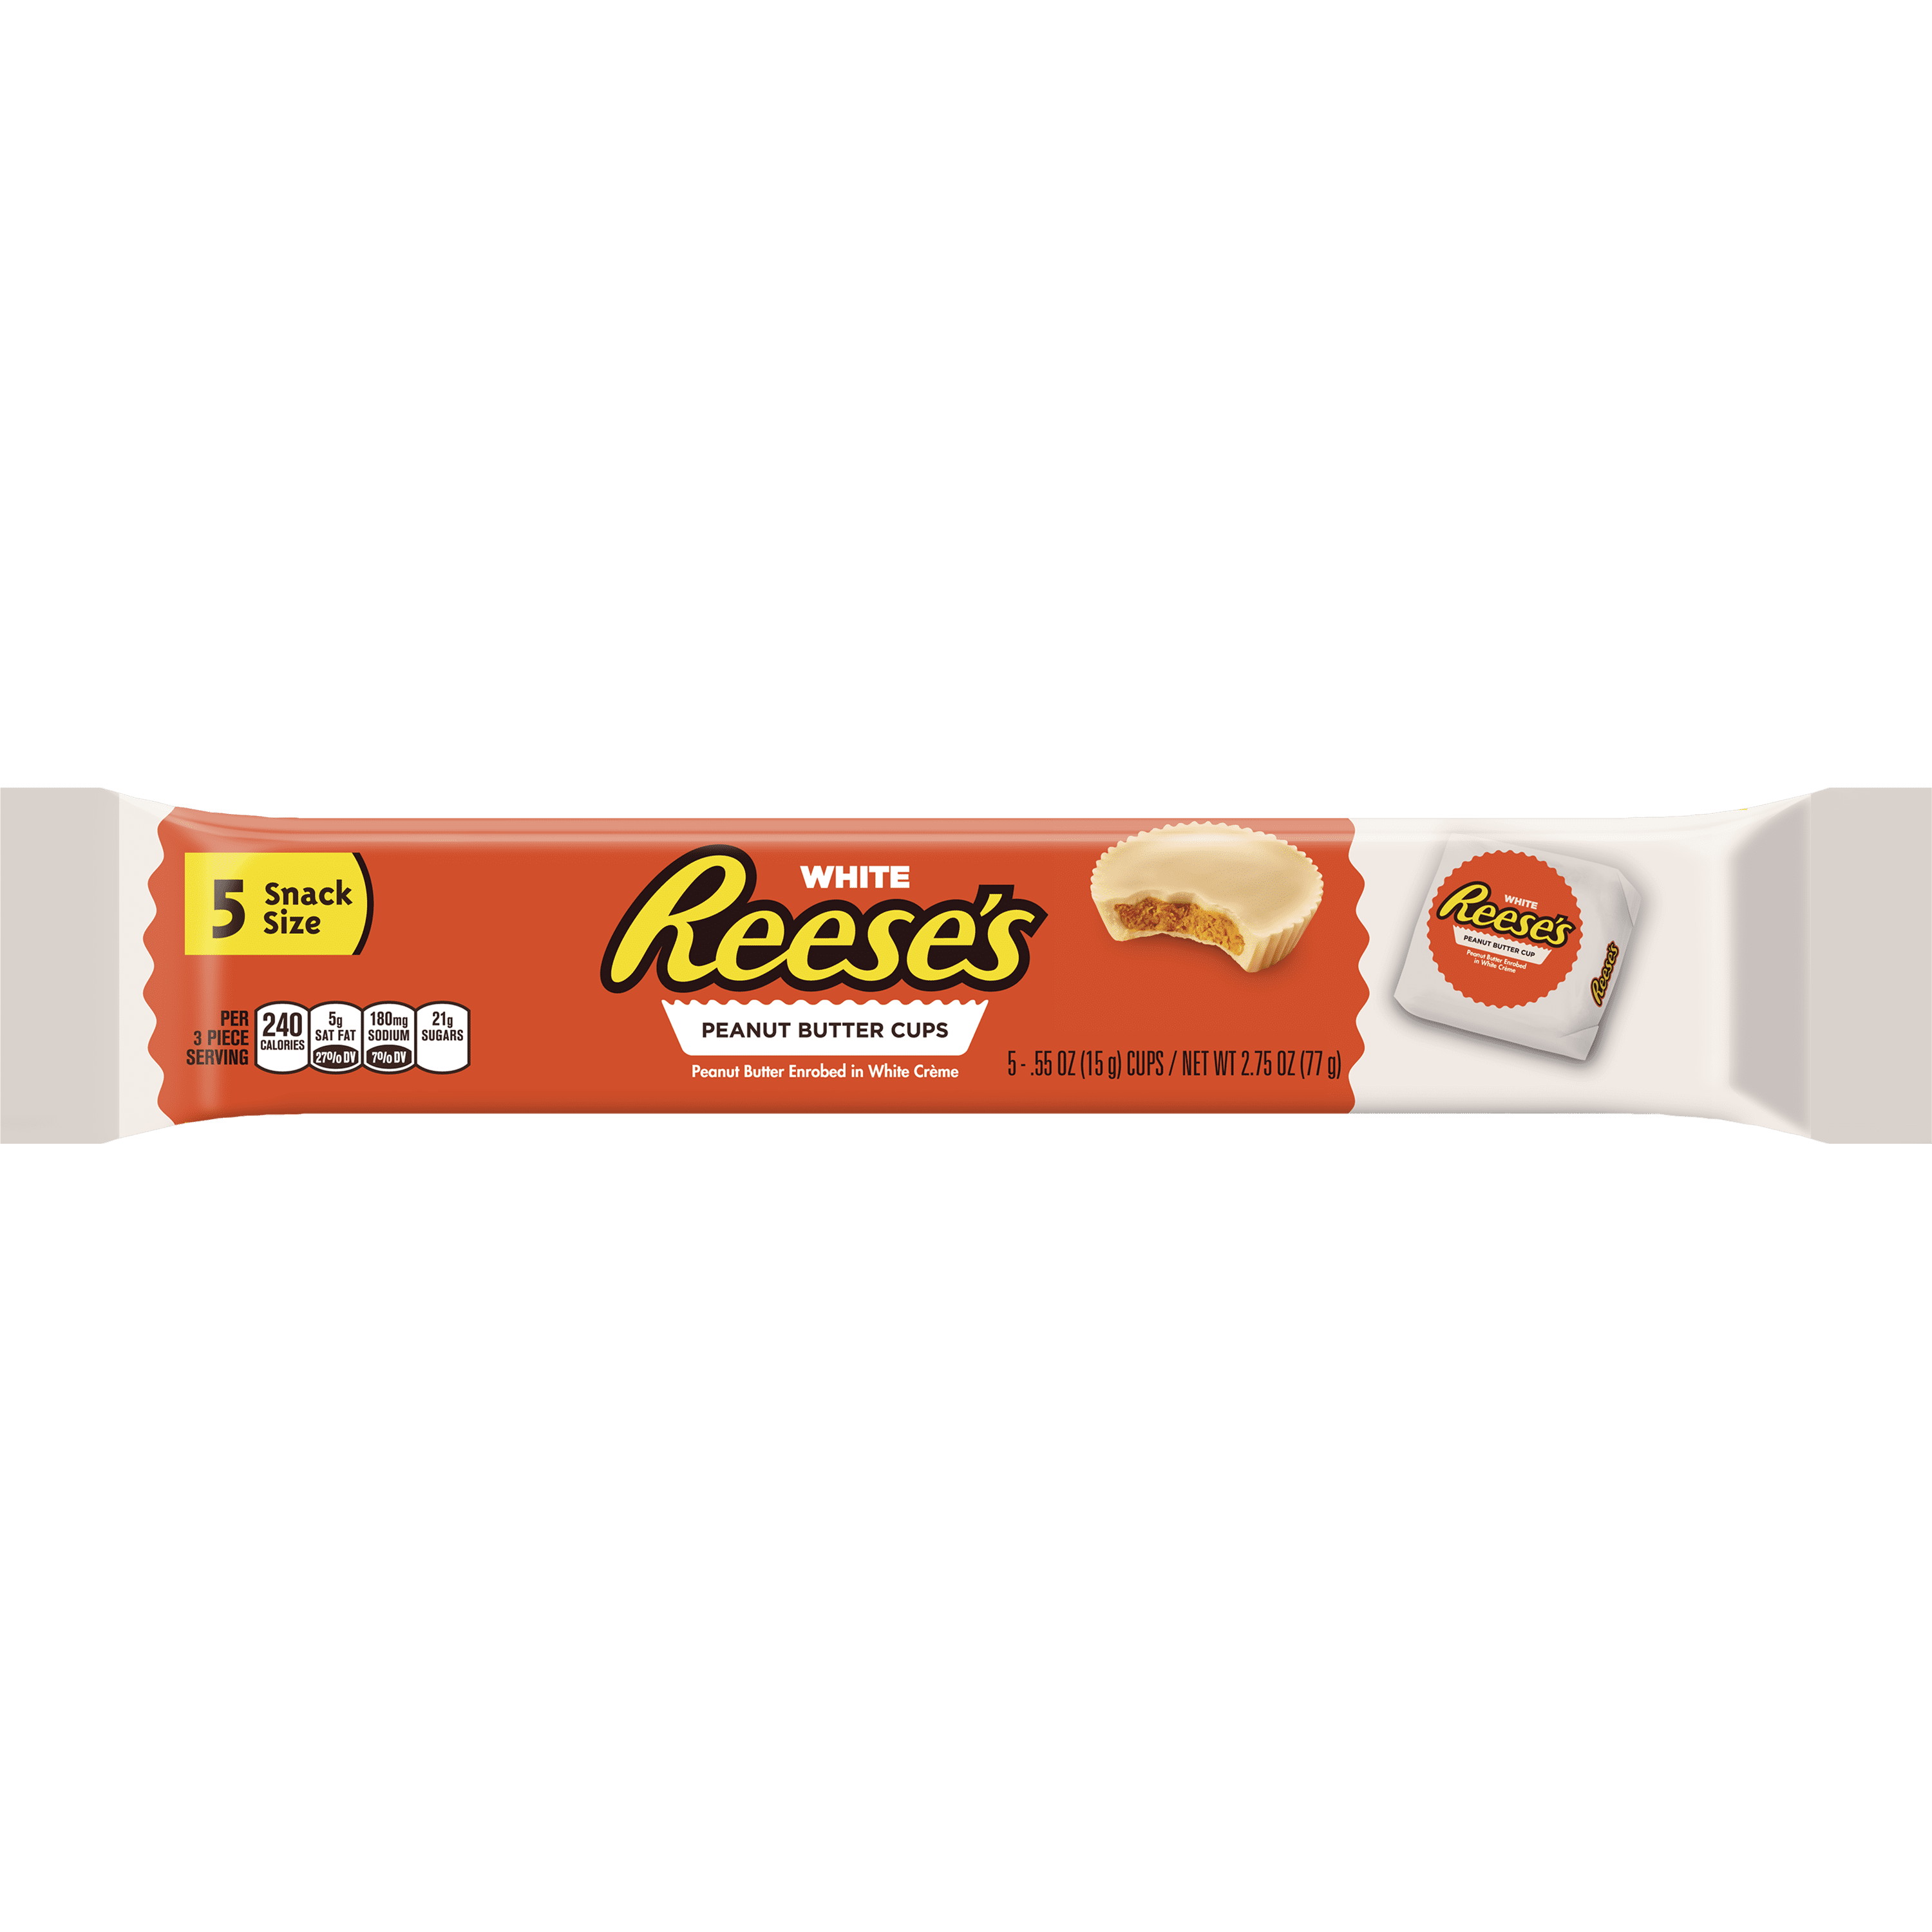 Reese's Snack Size White Peanut Butter Cups Candy, 2.75 Oz.